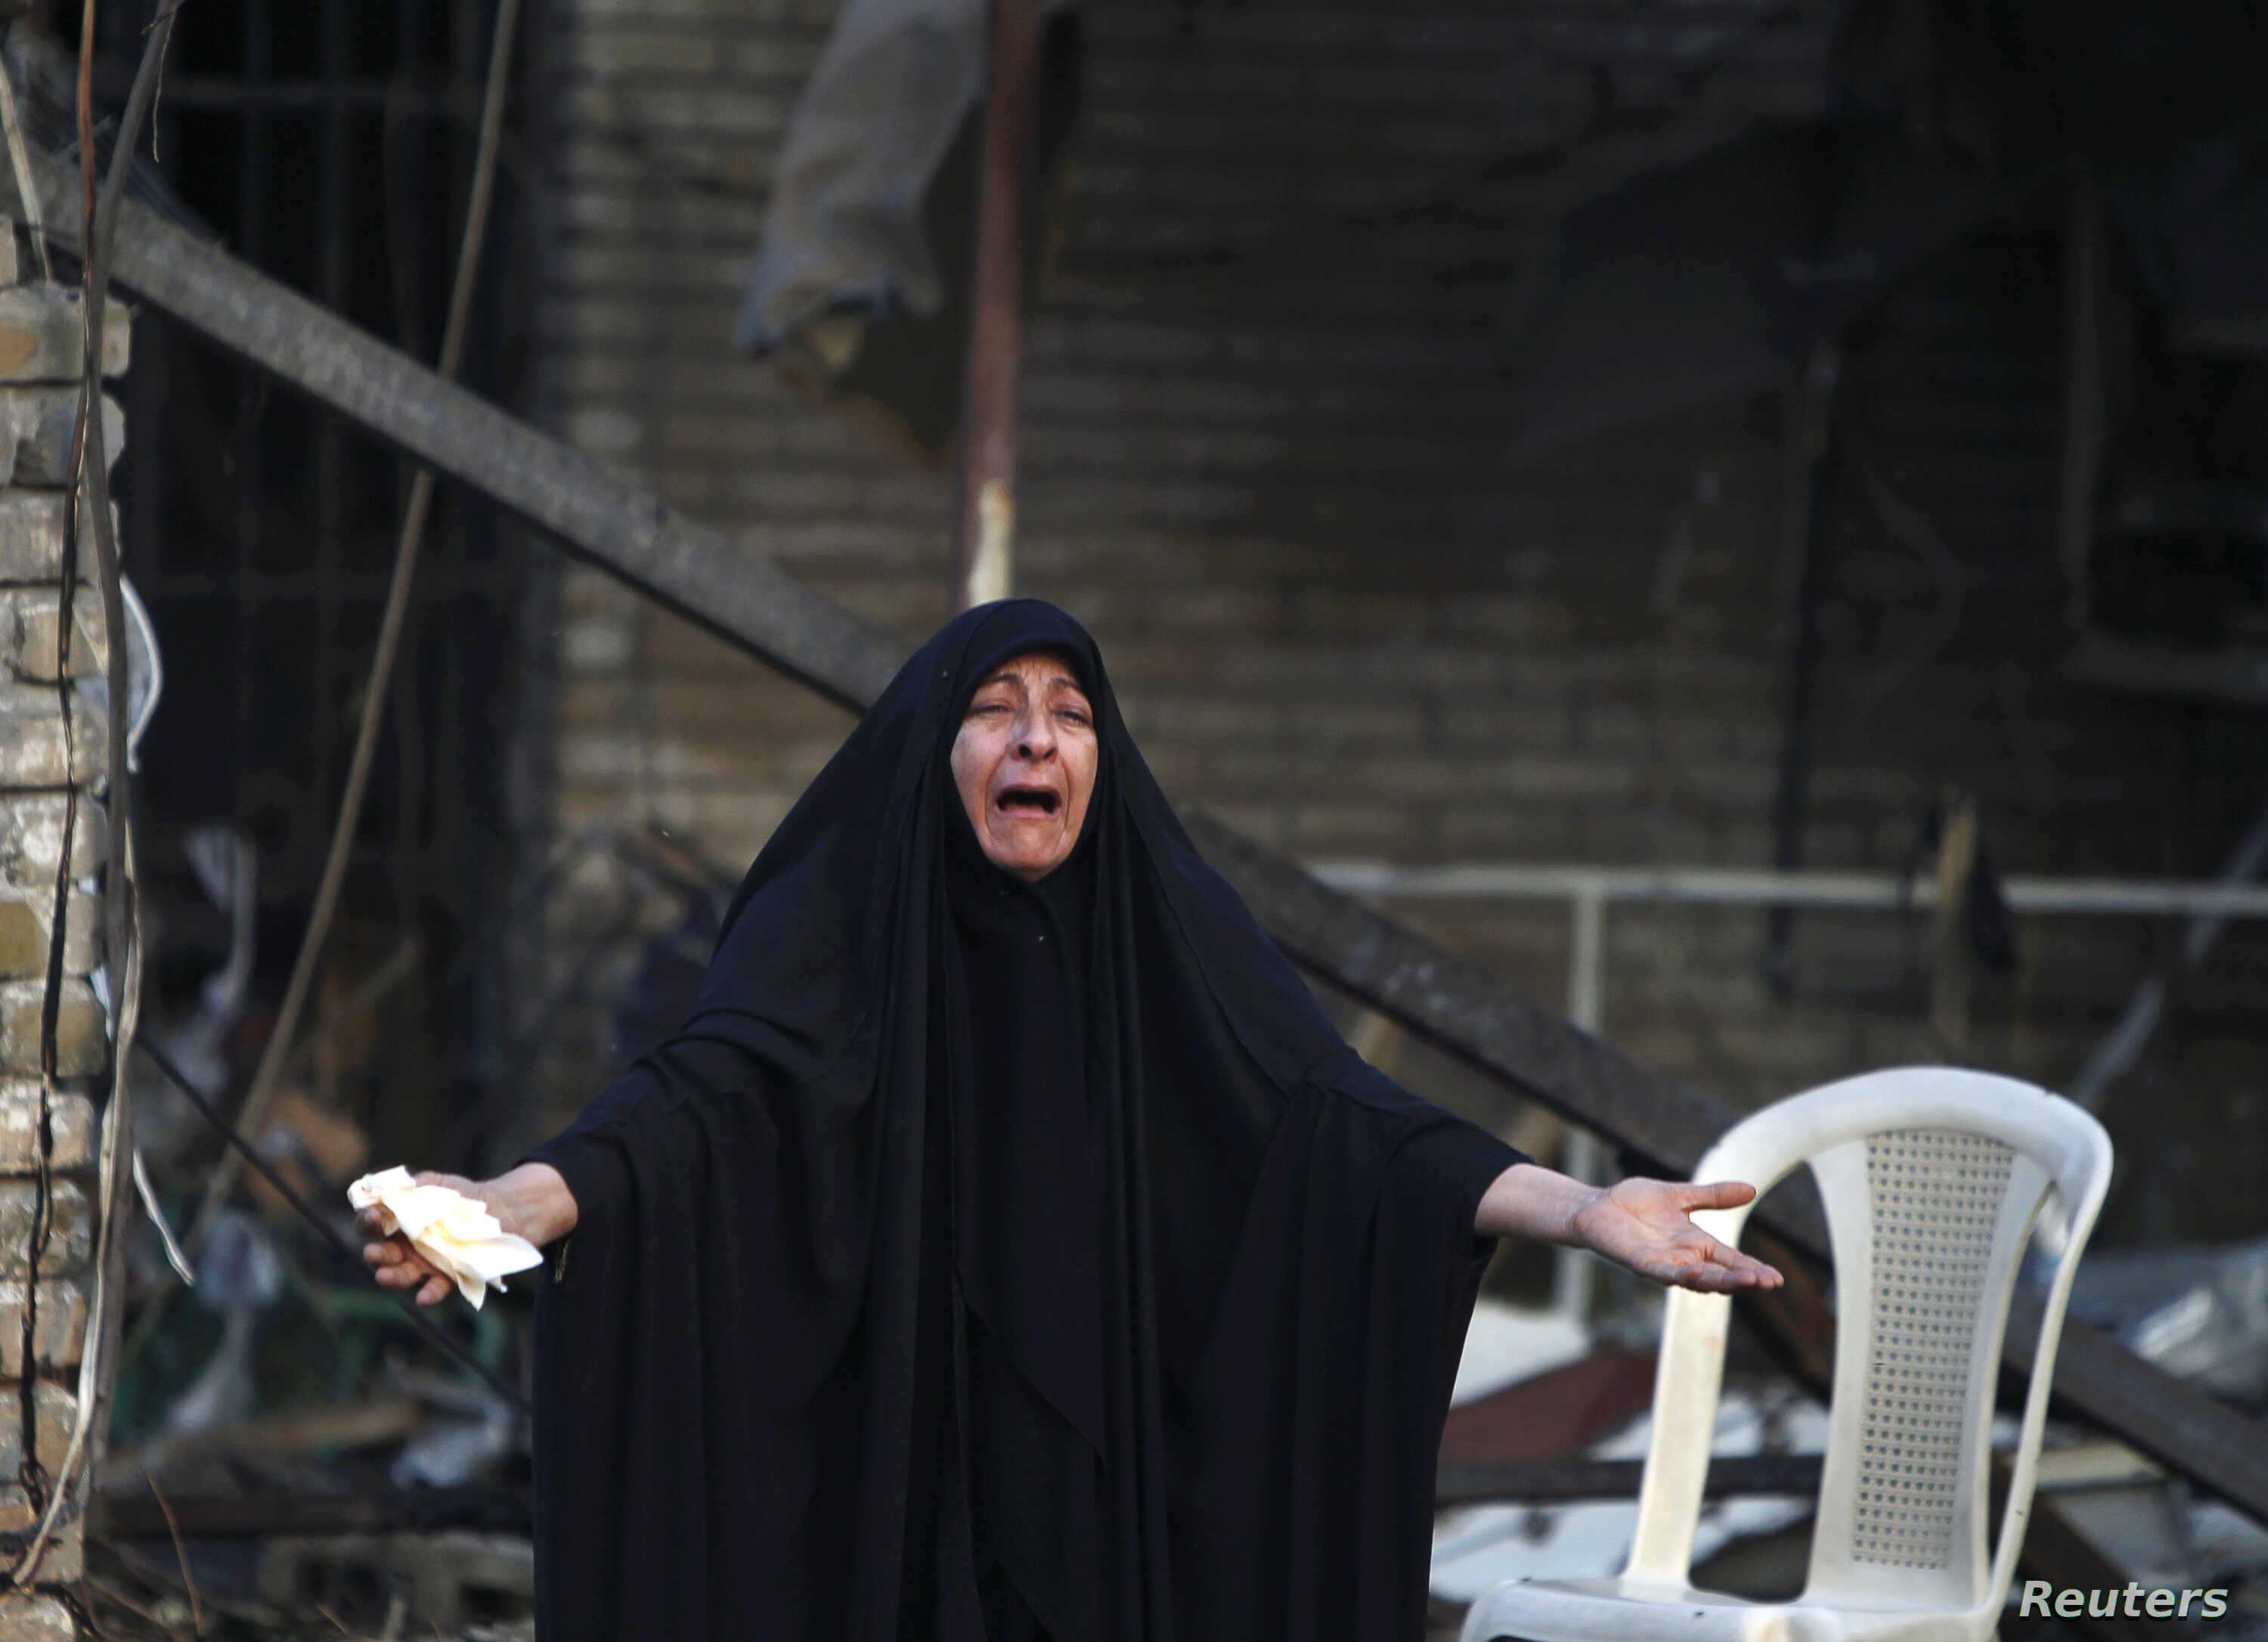 A woman reacts at the site of a car bomb attack that killed a parliament member and 24 others Tuesday, at the entrance to the Shi'ite neighborhood of Kadhimiya in Baghdad, Oct. 15, 2014.